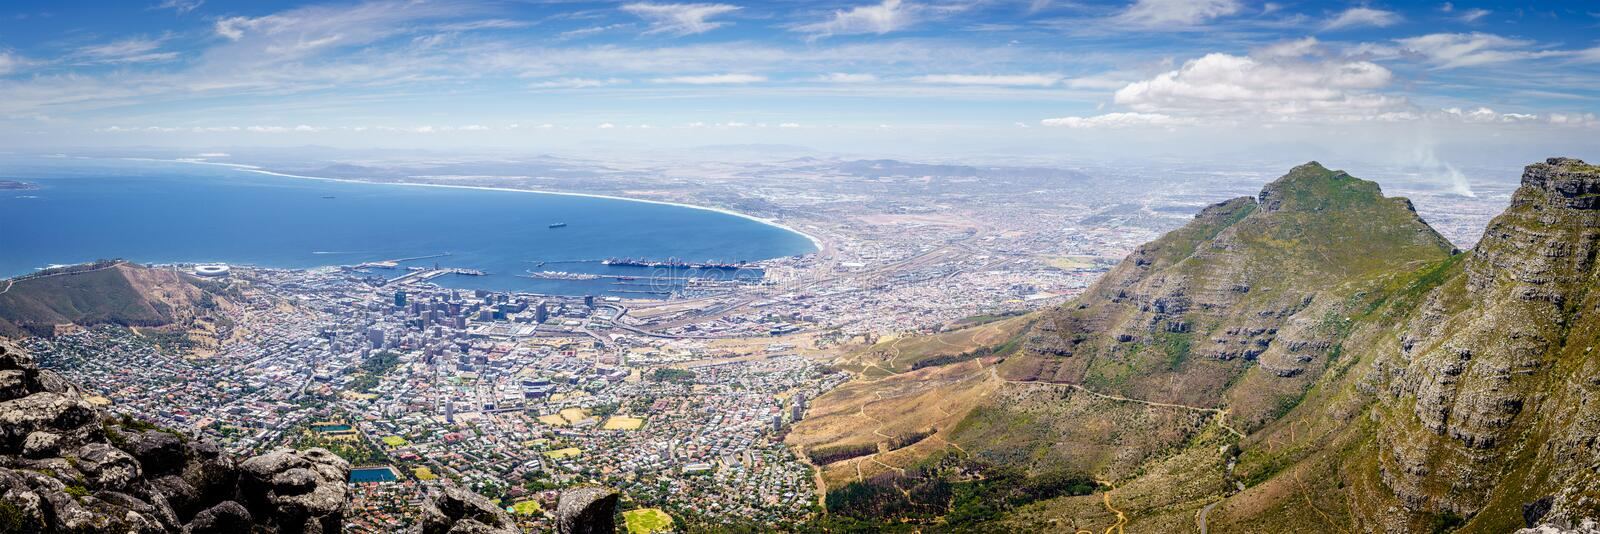 Cape Town panorama, South Africa. Panoramic view of the city of Cape Town the Atlantic coast from Table Mountain royalty free stock image